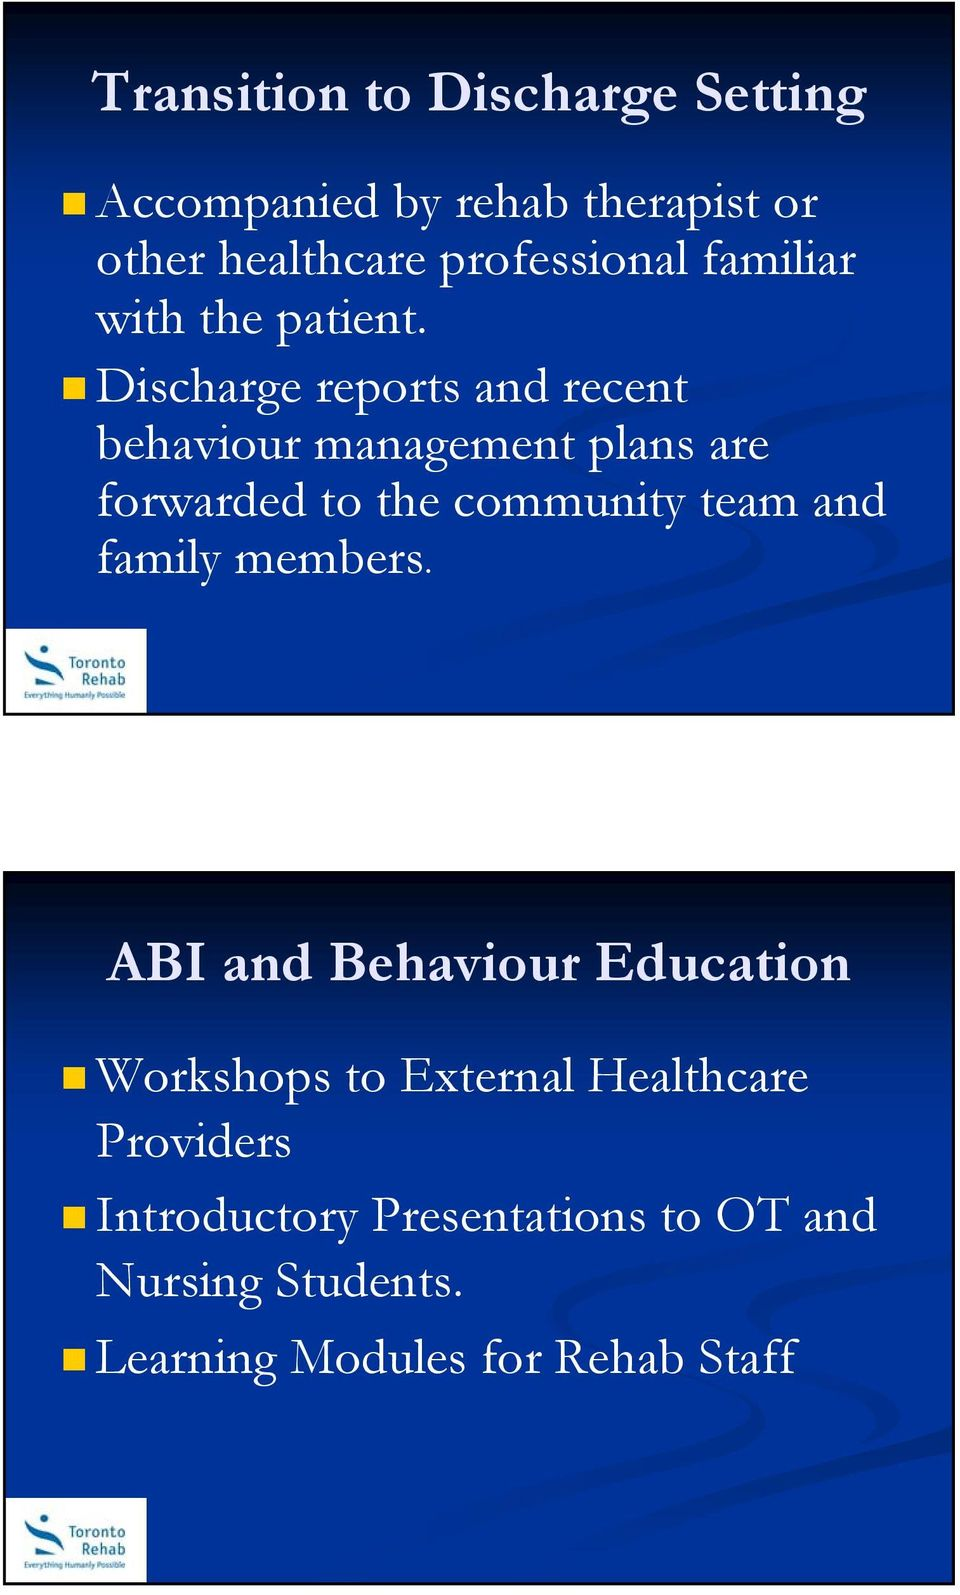 Discharge reports and recent behaviour management plans are forwarded to the community team and